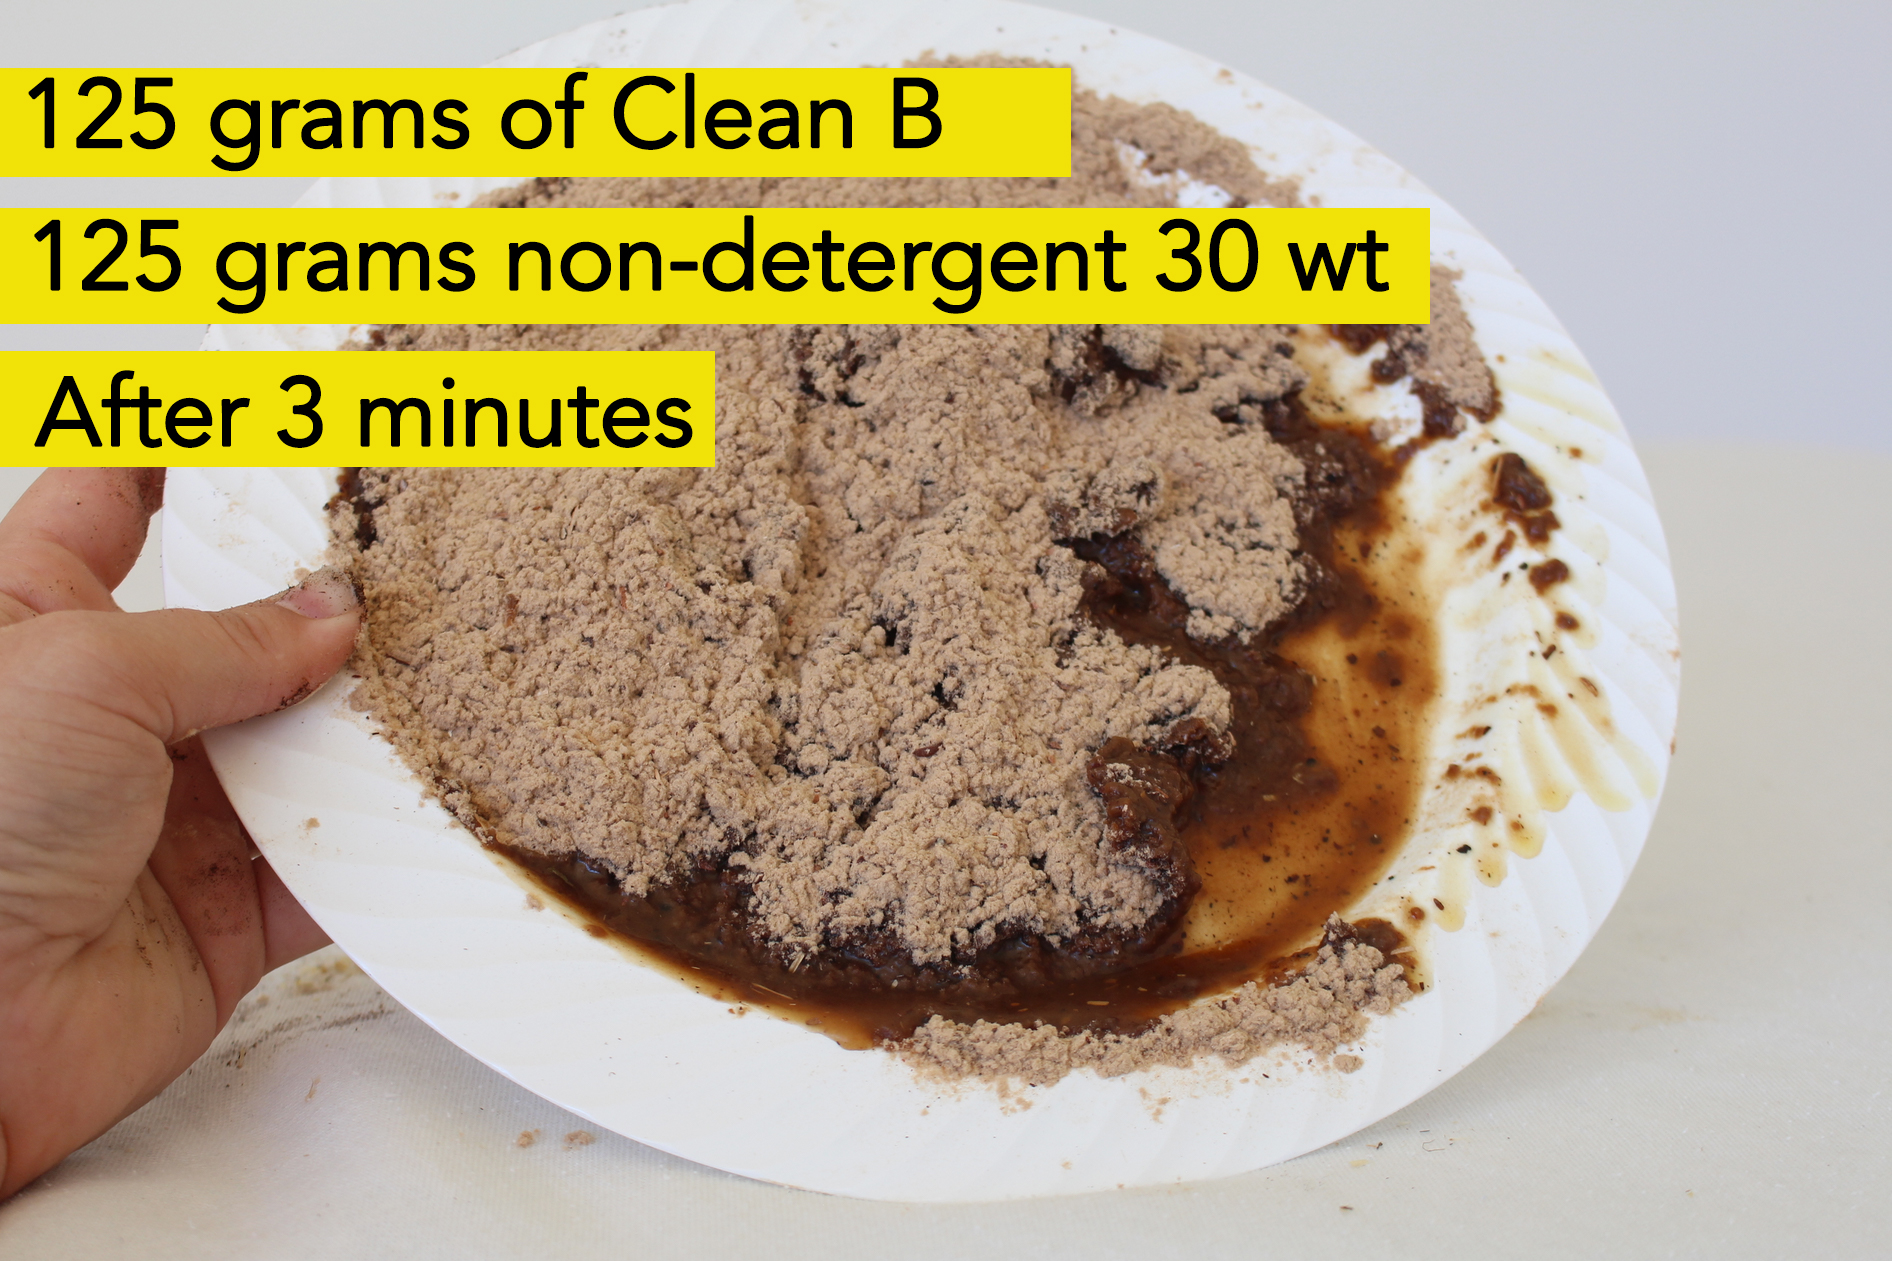 Clean B oil absorbent after cleaning up a minor oil spill test. Oil residue is still left over despite oil absorbent being used.